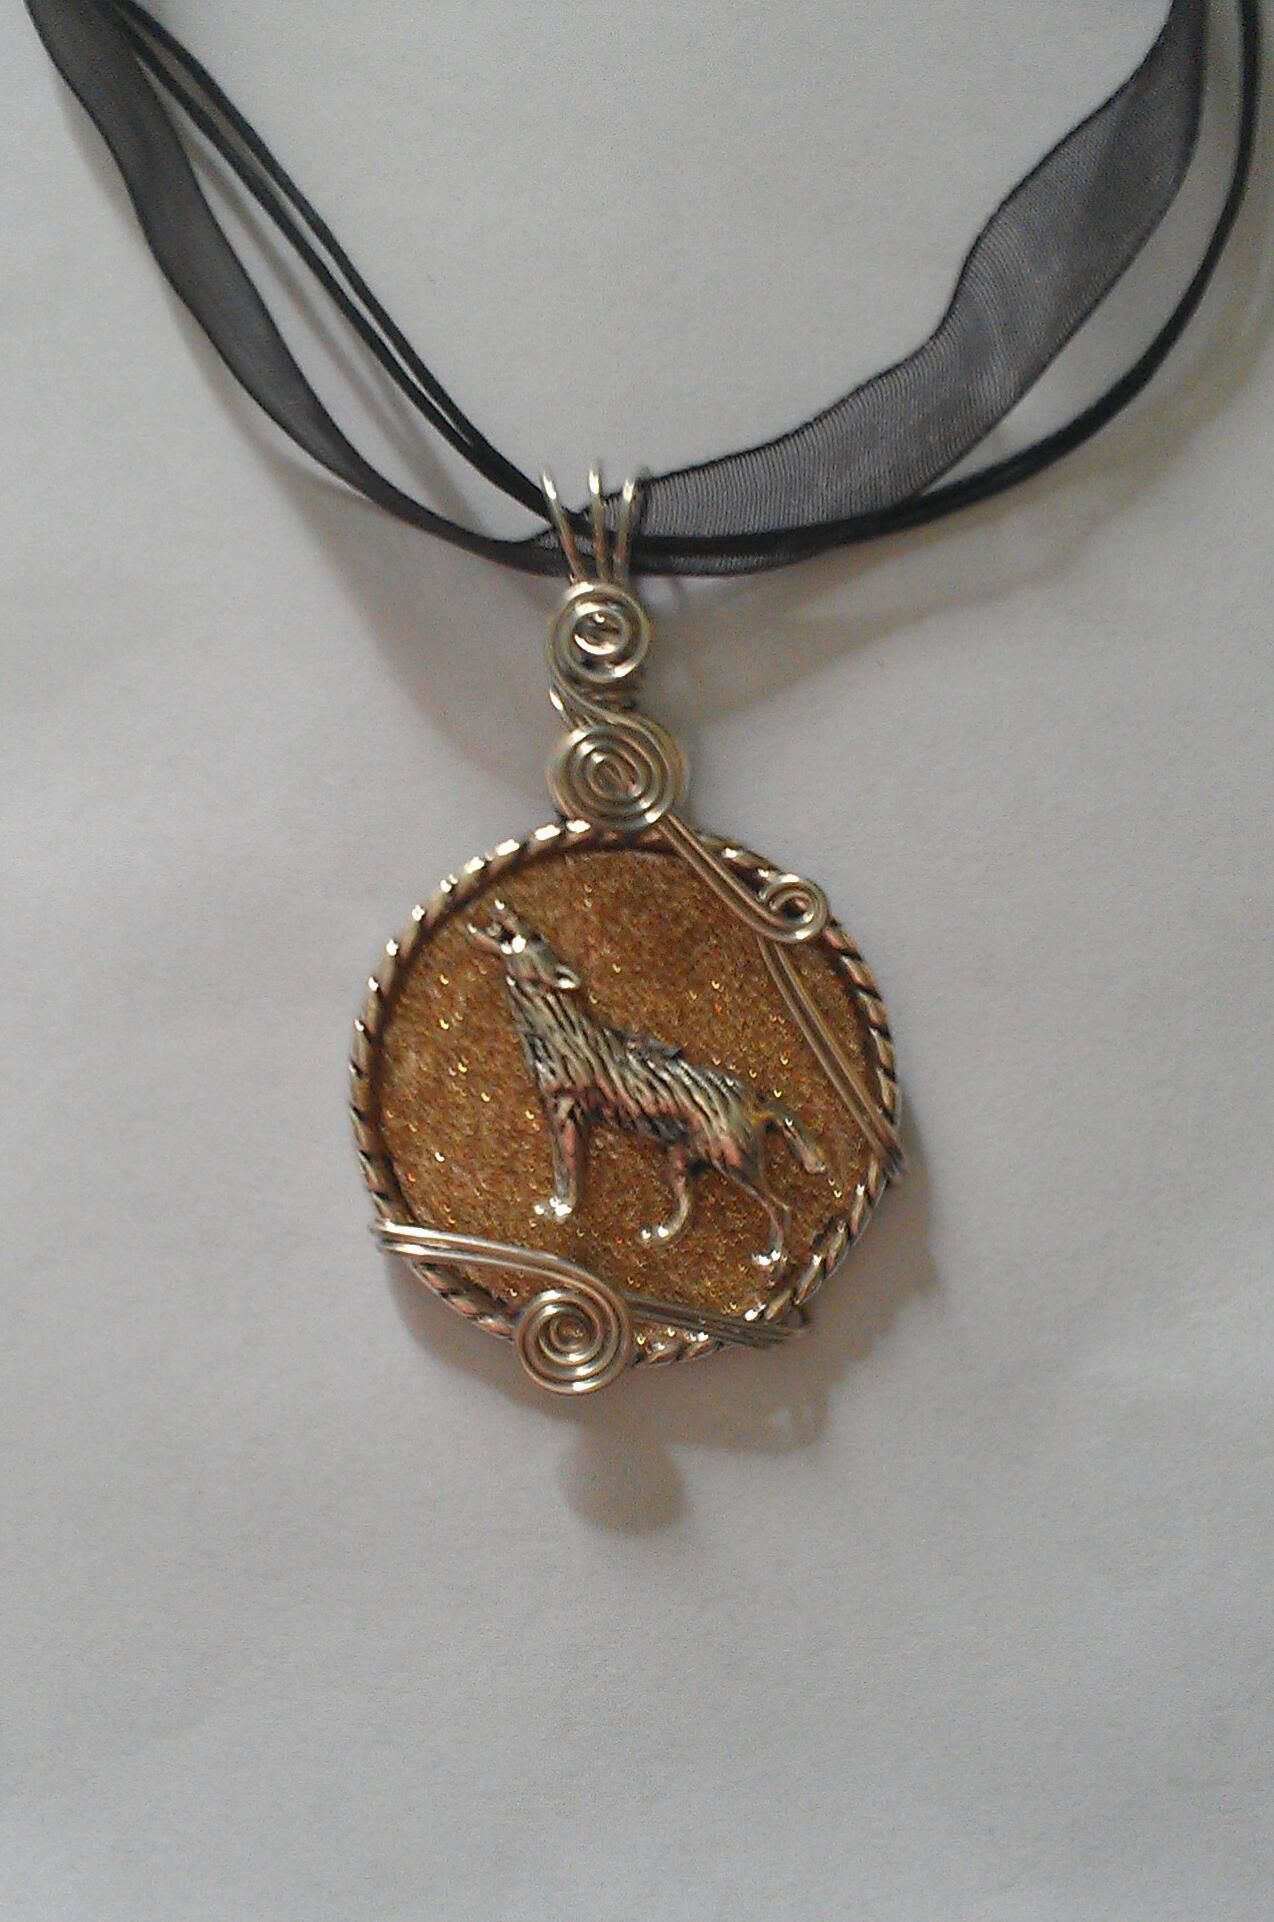 Custom Piece By Stone Soup Designs  Jewelry & Swag  Pinterest  Stones,  Stone Soup And Soups